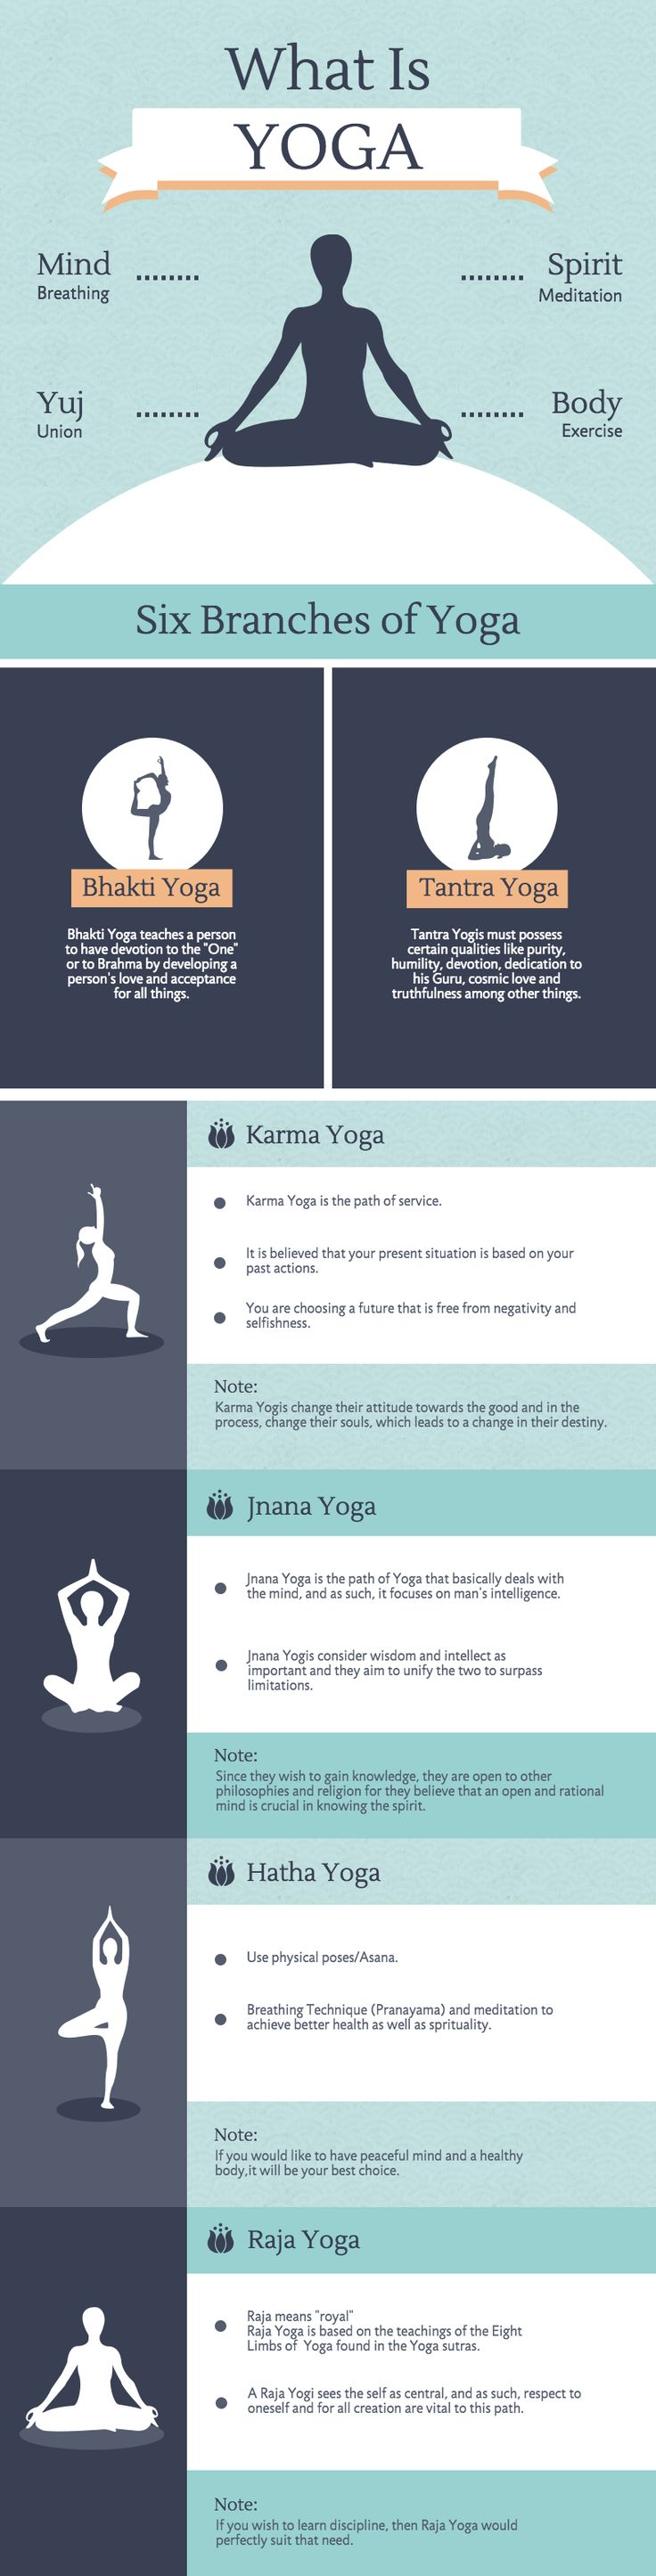 images about piktochart templates editor learn about the 6 different branches of yoga in this infographic template this template